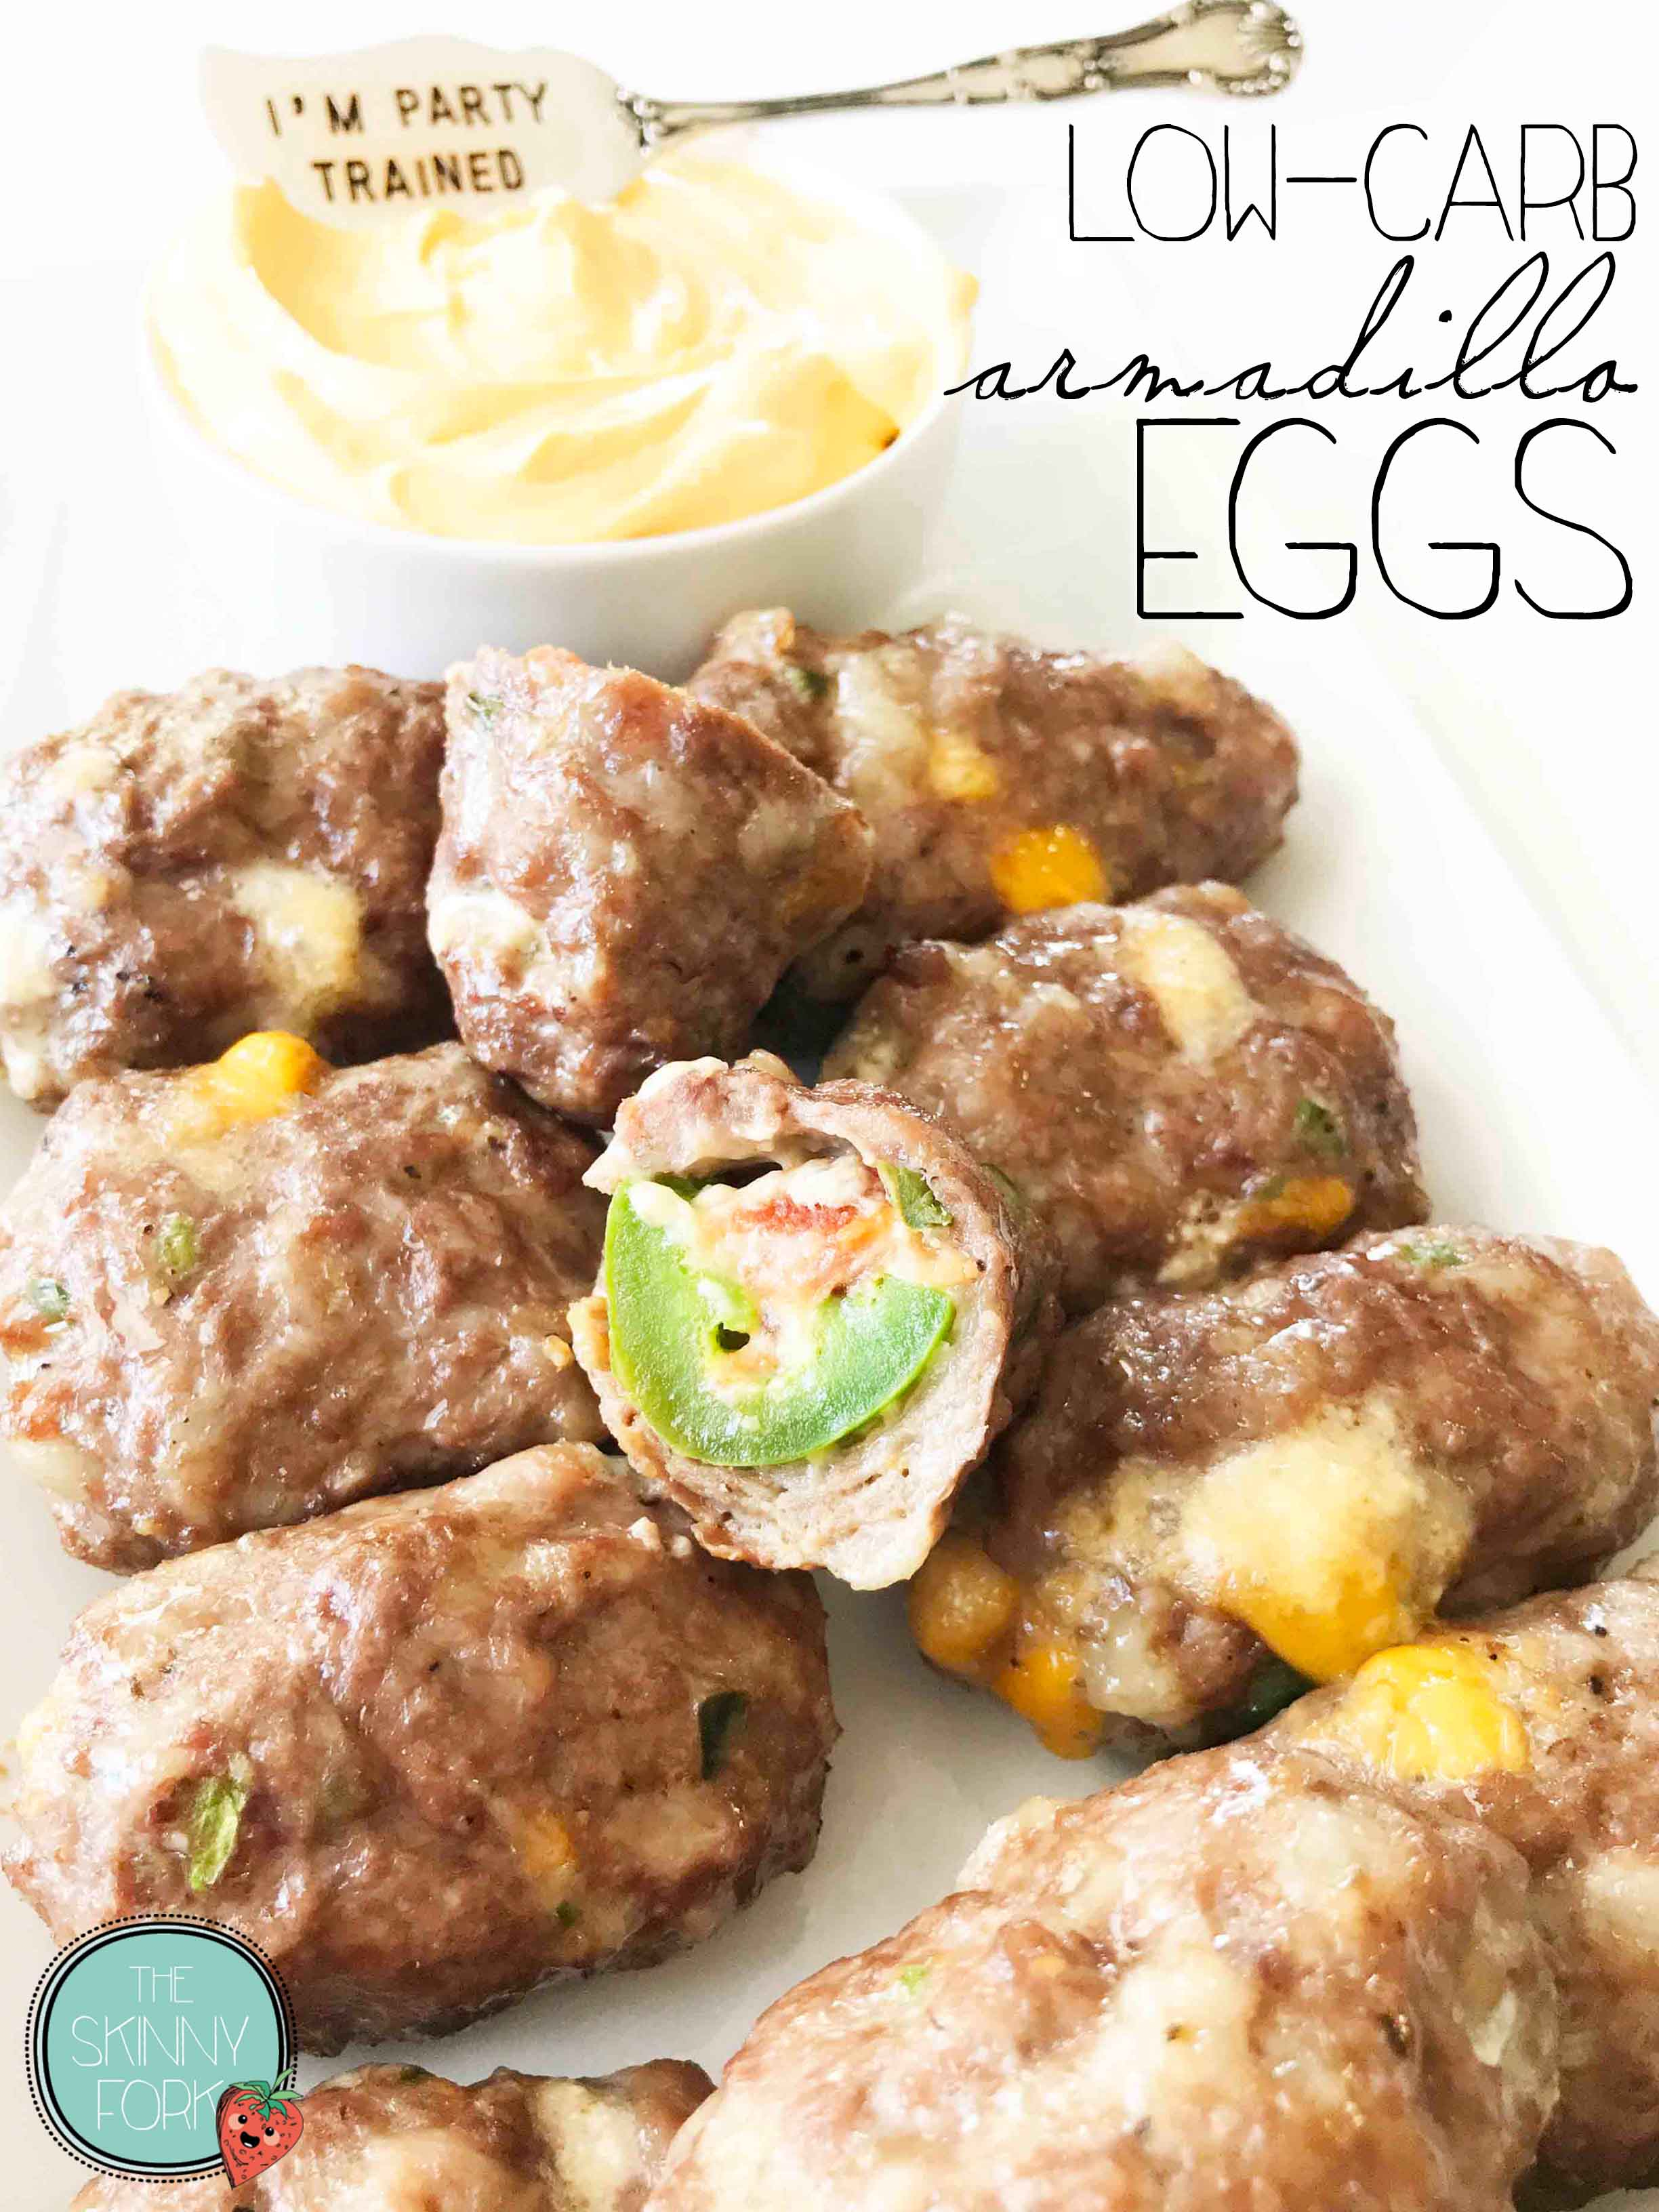 armadillo-eggs-pin.jpg